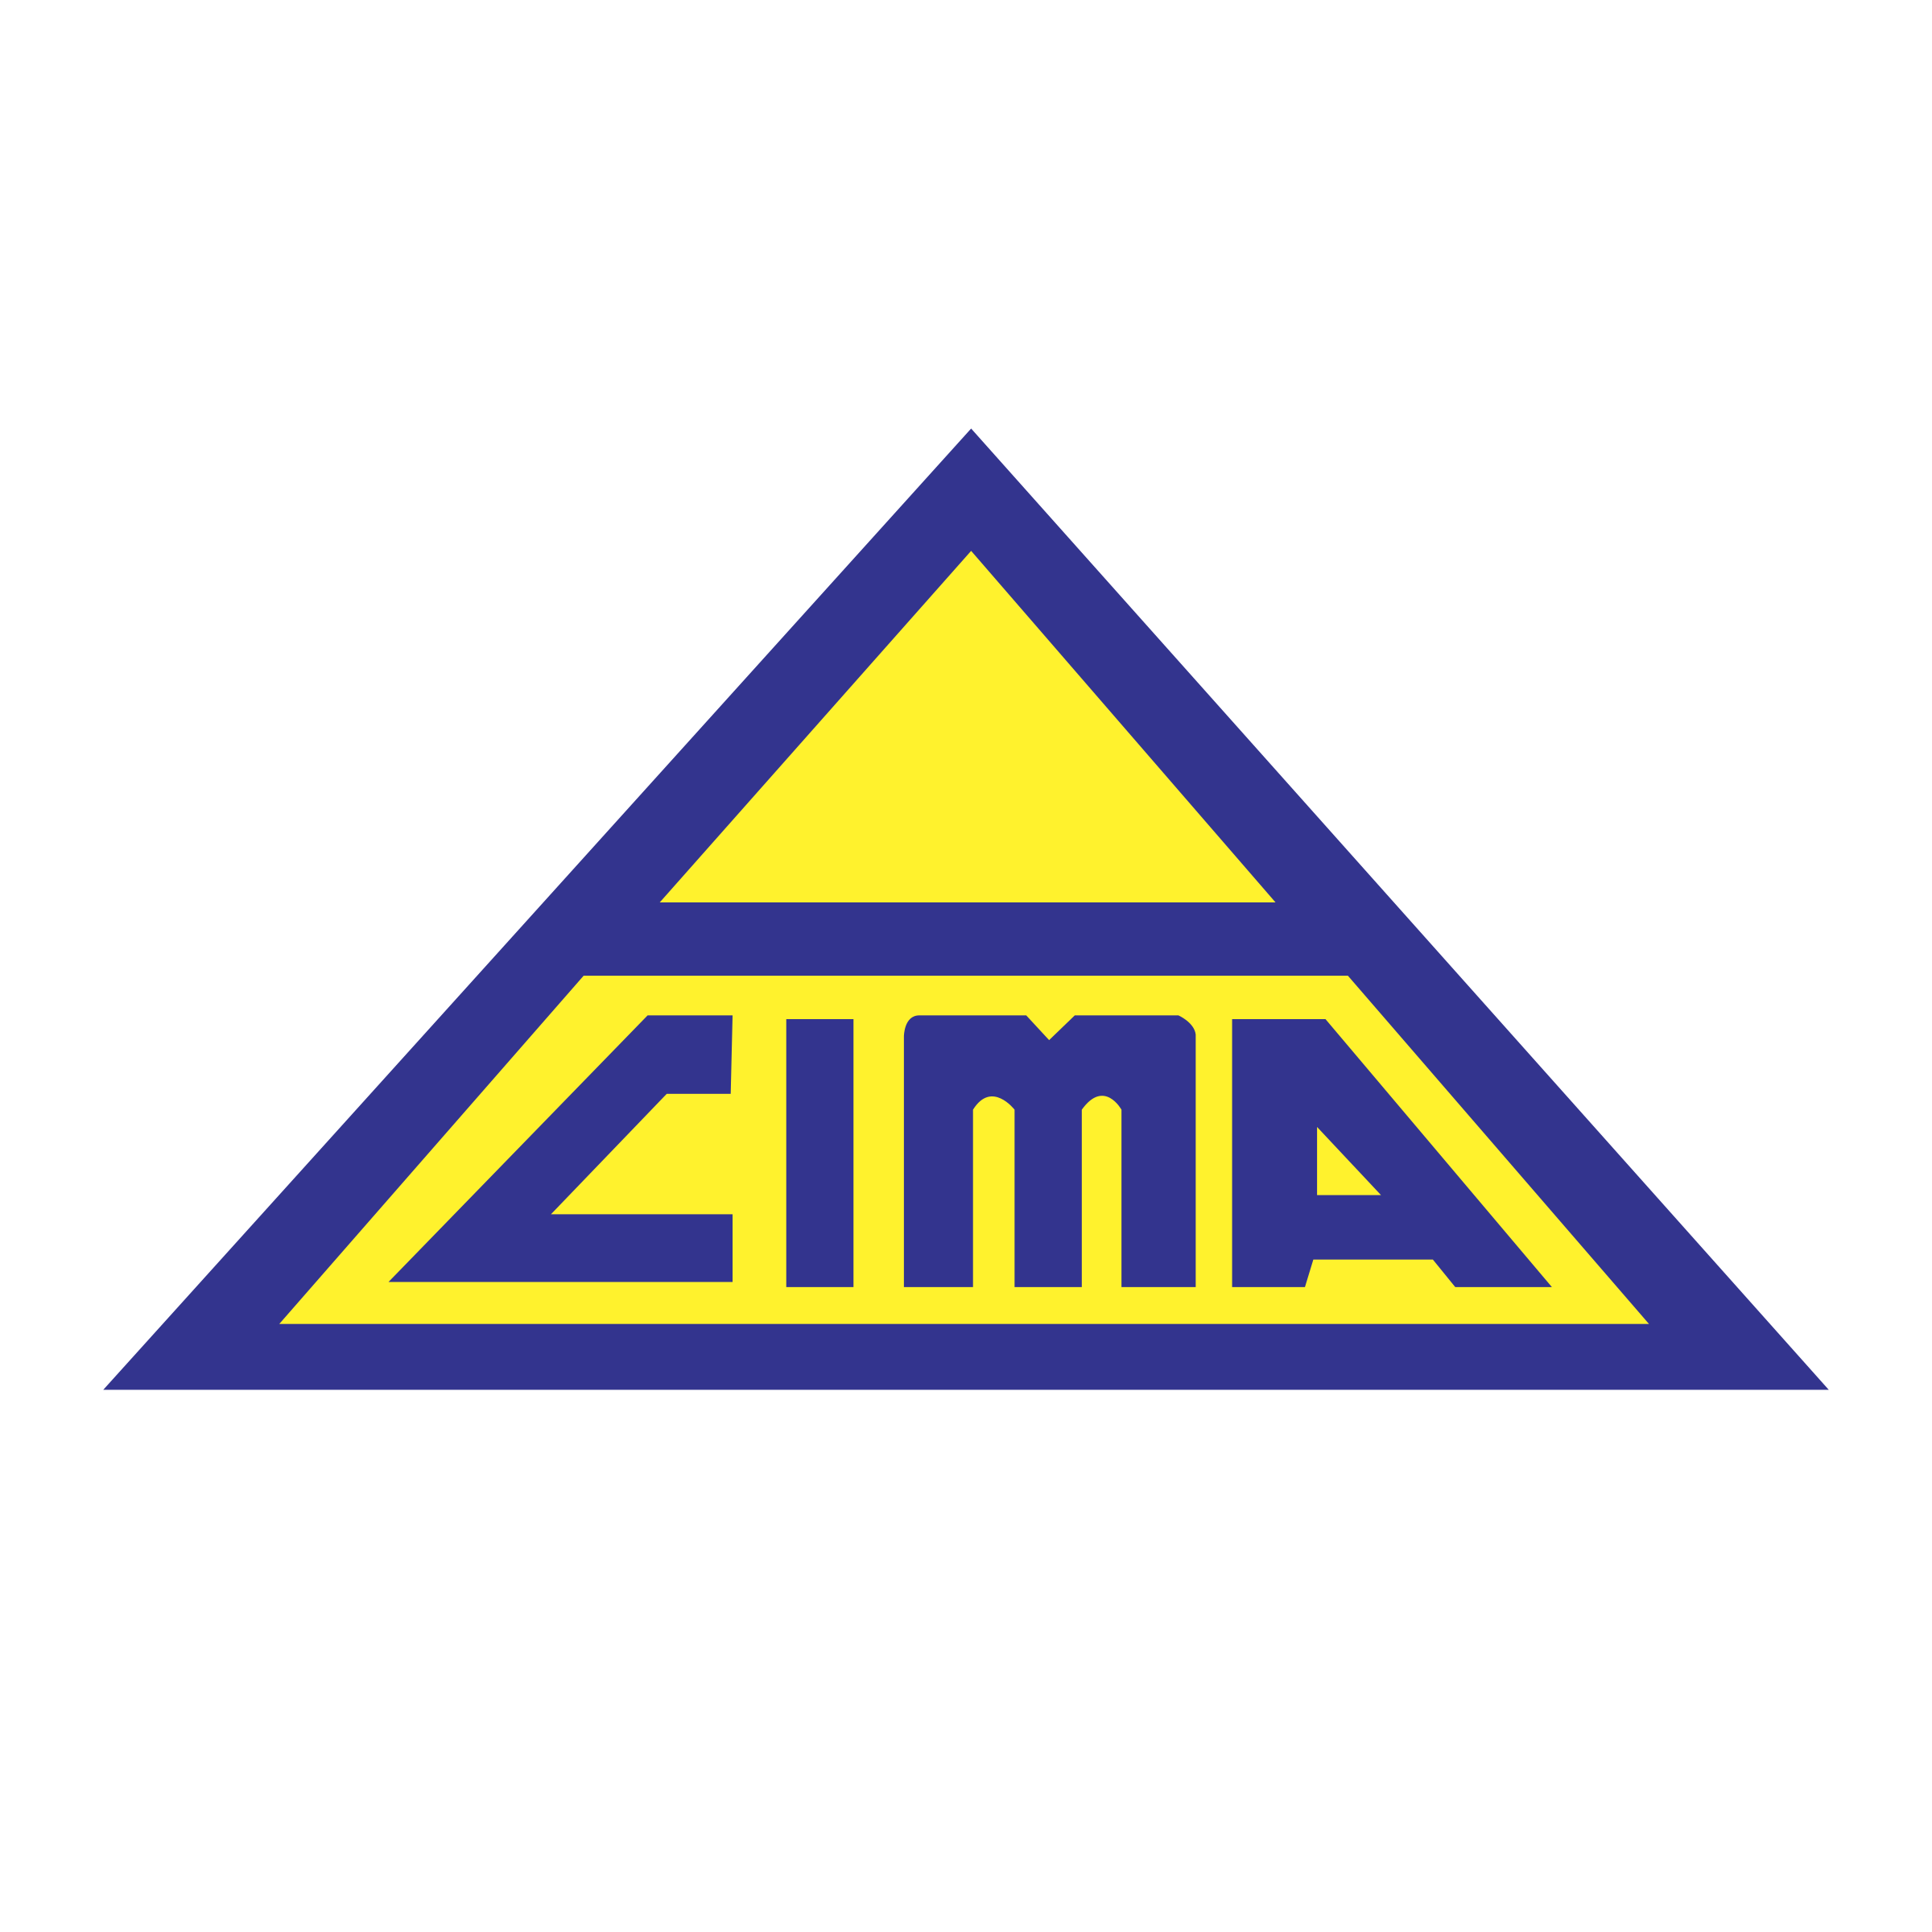 Cima logo download free clipart with a transparent.